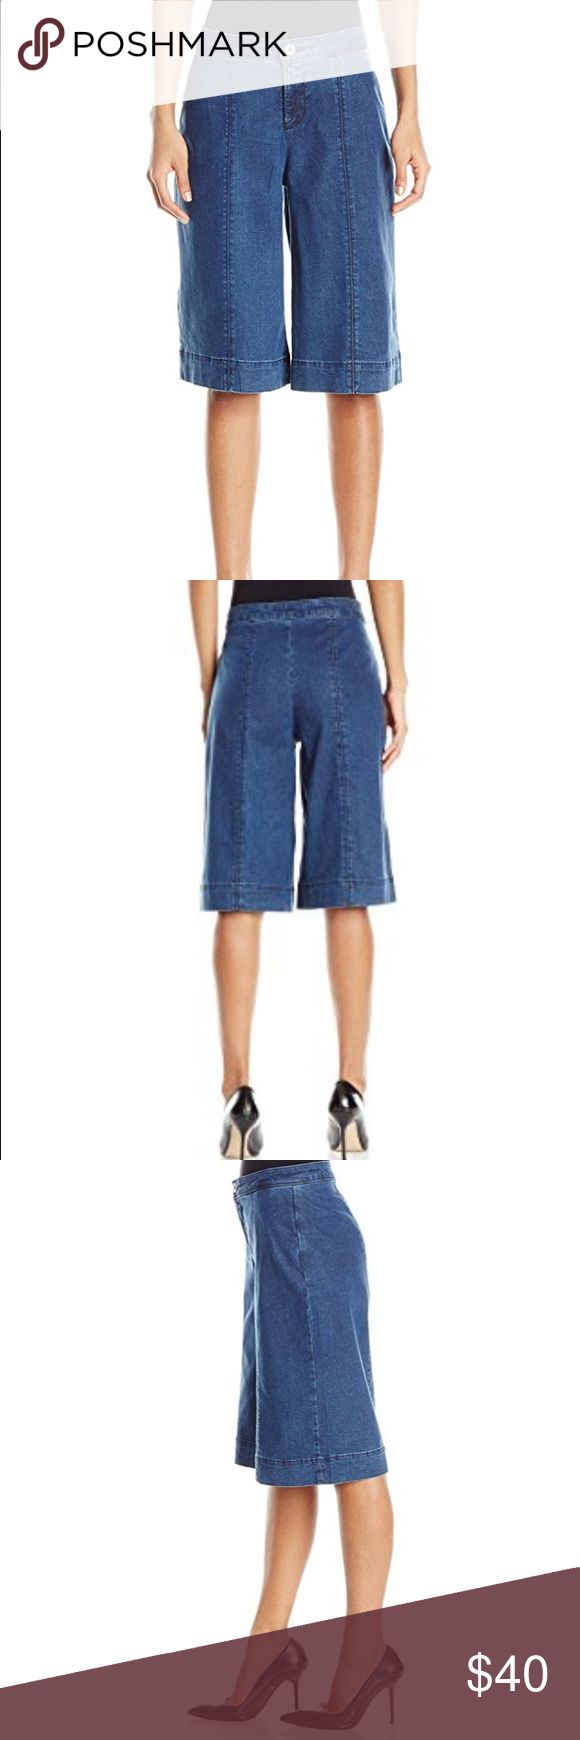 NYDJ Chambray Culottes NYDJ culottes hit right below the knee. Has stretch and runs a little big. A little worn in the inner thigh but denim is in good condition and has no thinning in fibers on inner thigh. NYDJ Jeans Ankle & Cropped